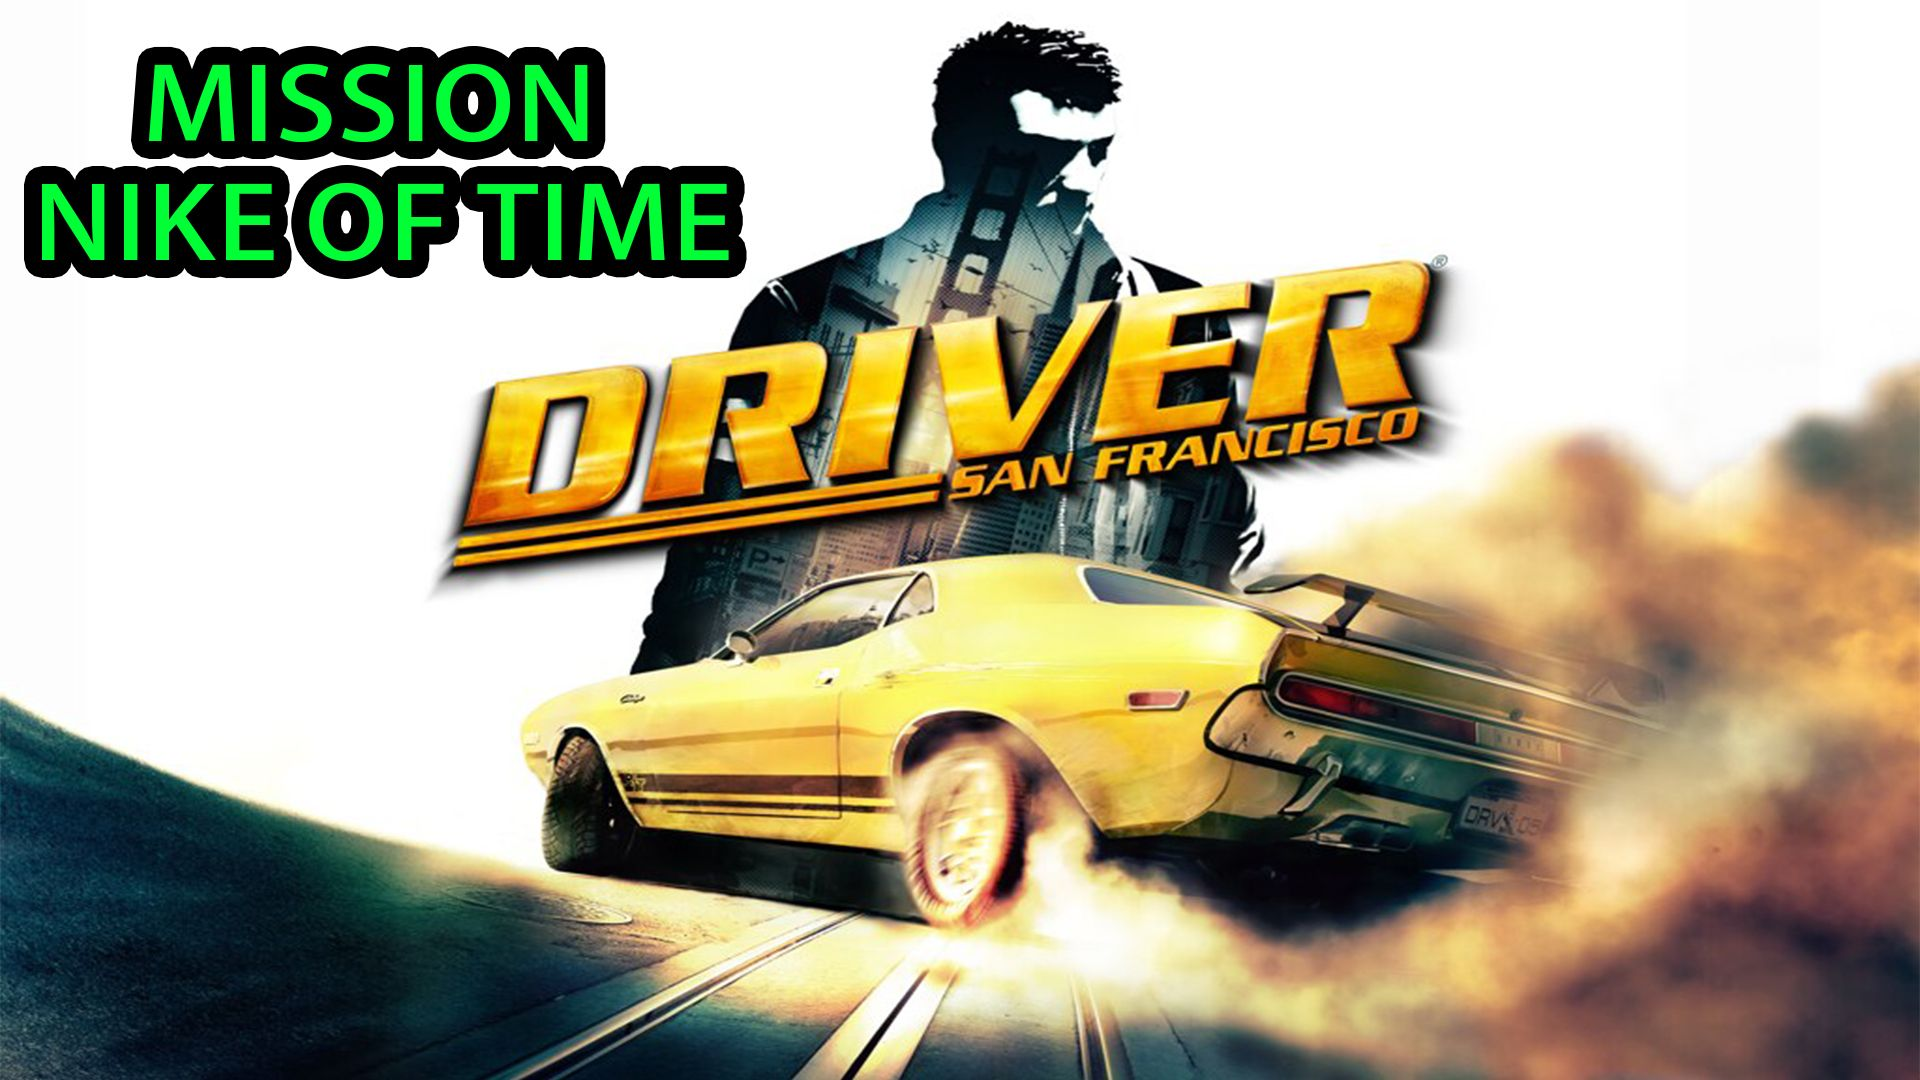 Great Mission Nike Of Time In 2020 Car Games Racing Games San